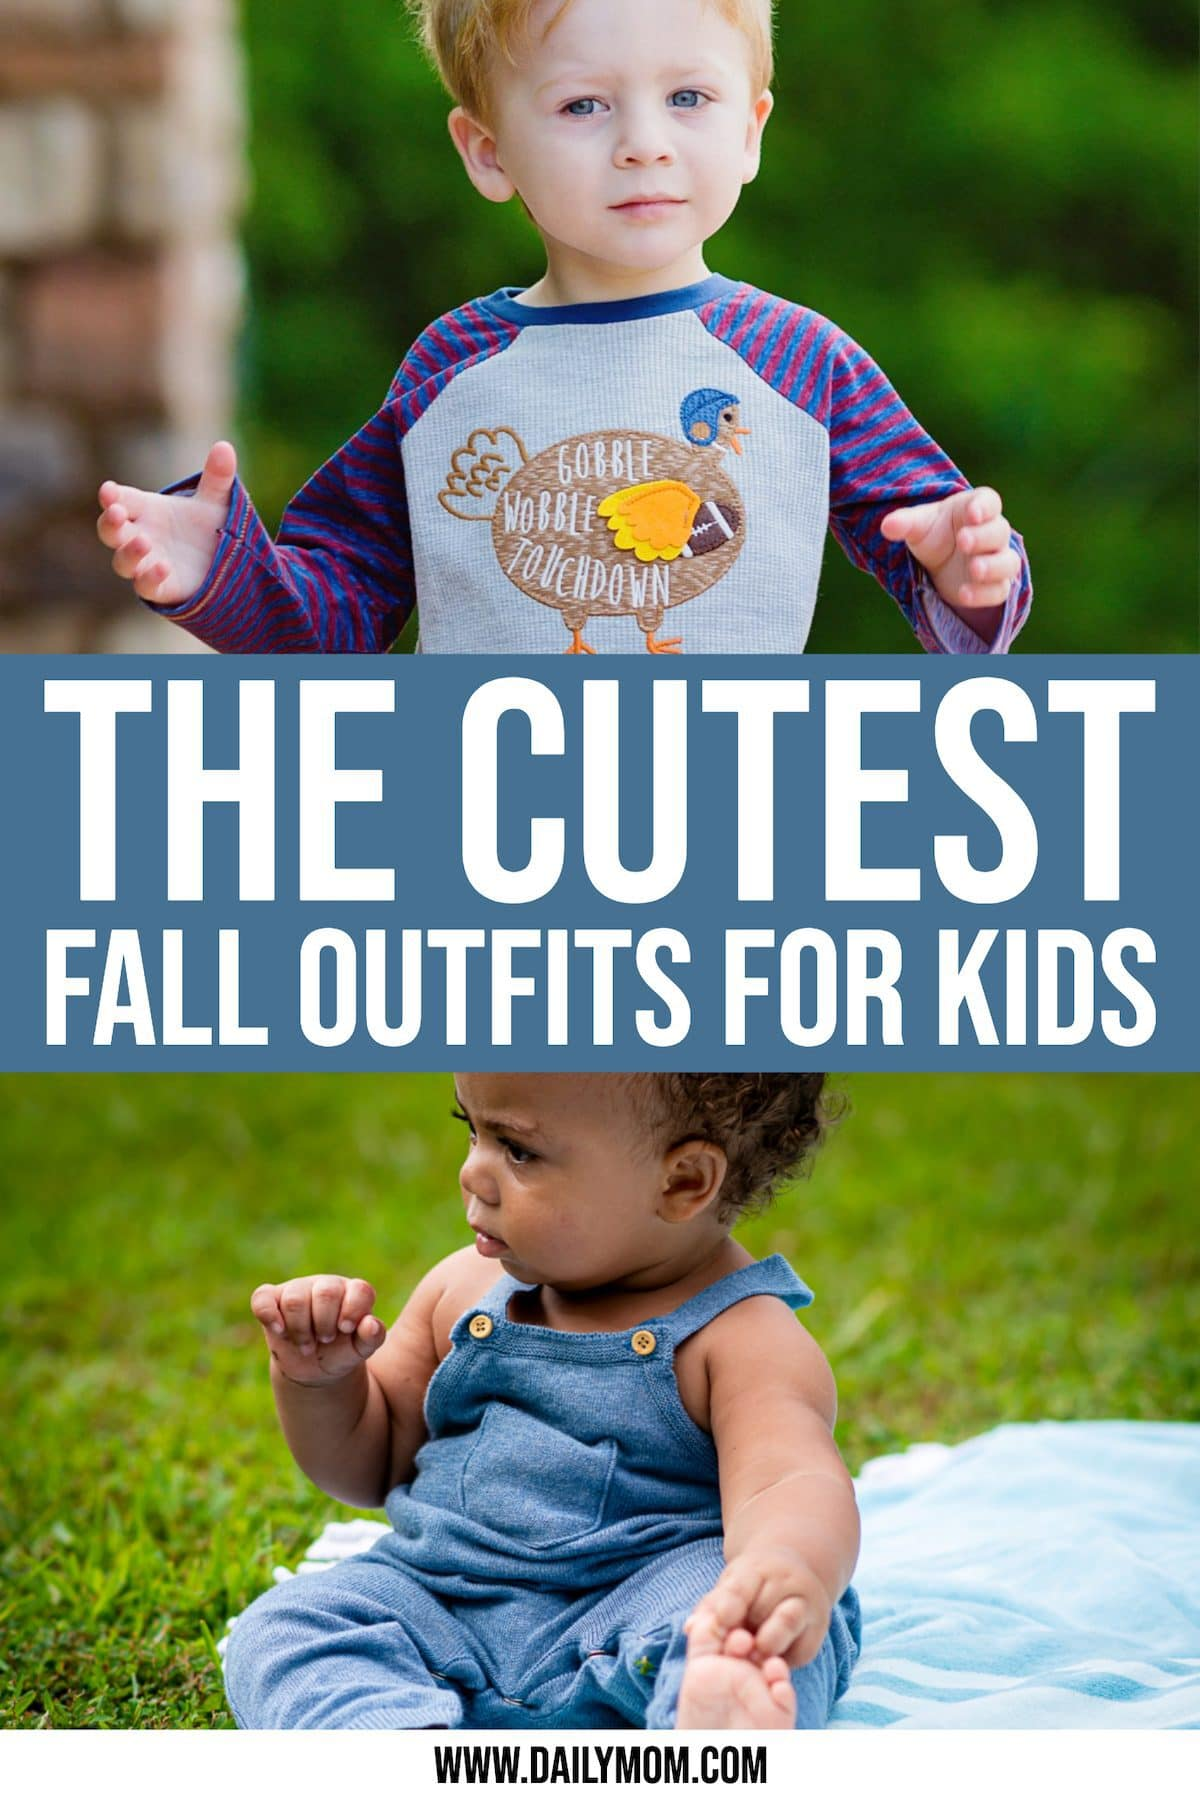 Cute Fall Outfits For Kids